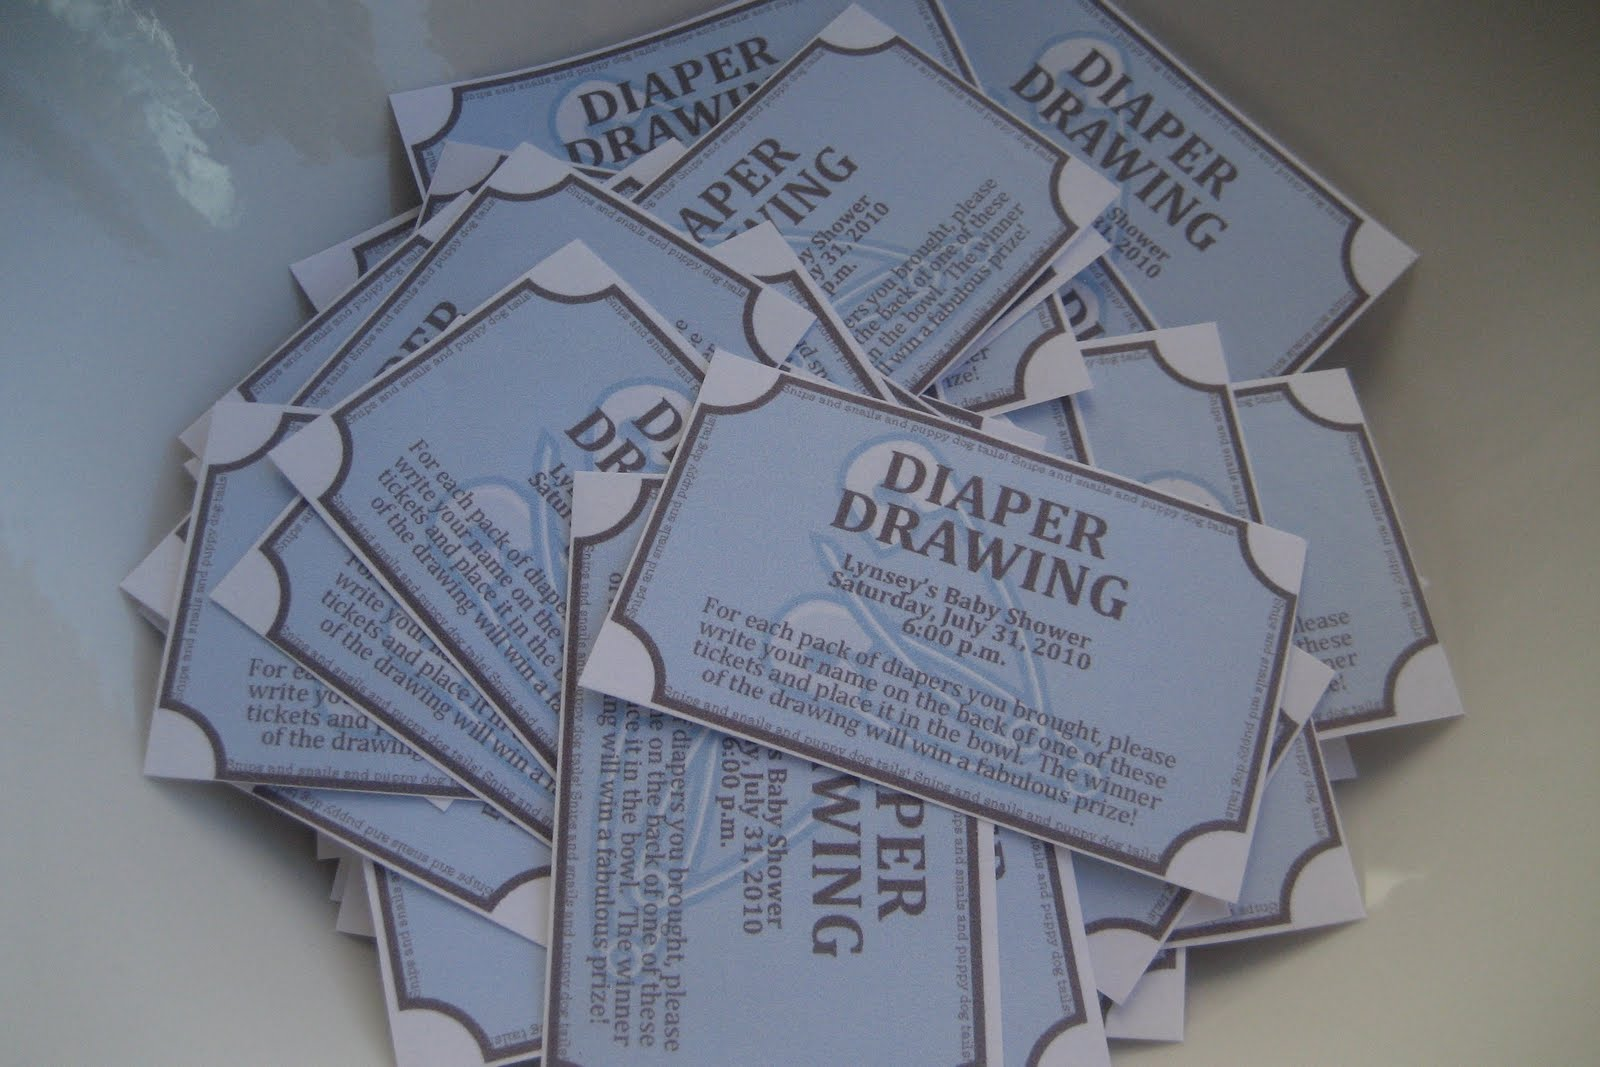 Baby Shower Raffle Ticket Template Diaper drawing tickets.